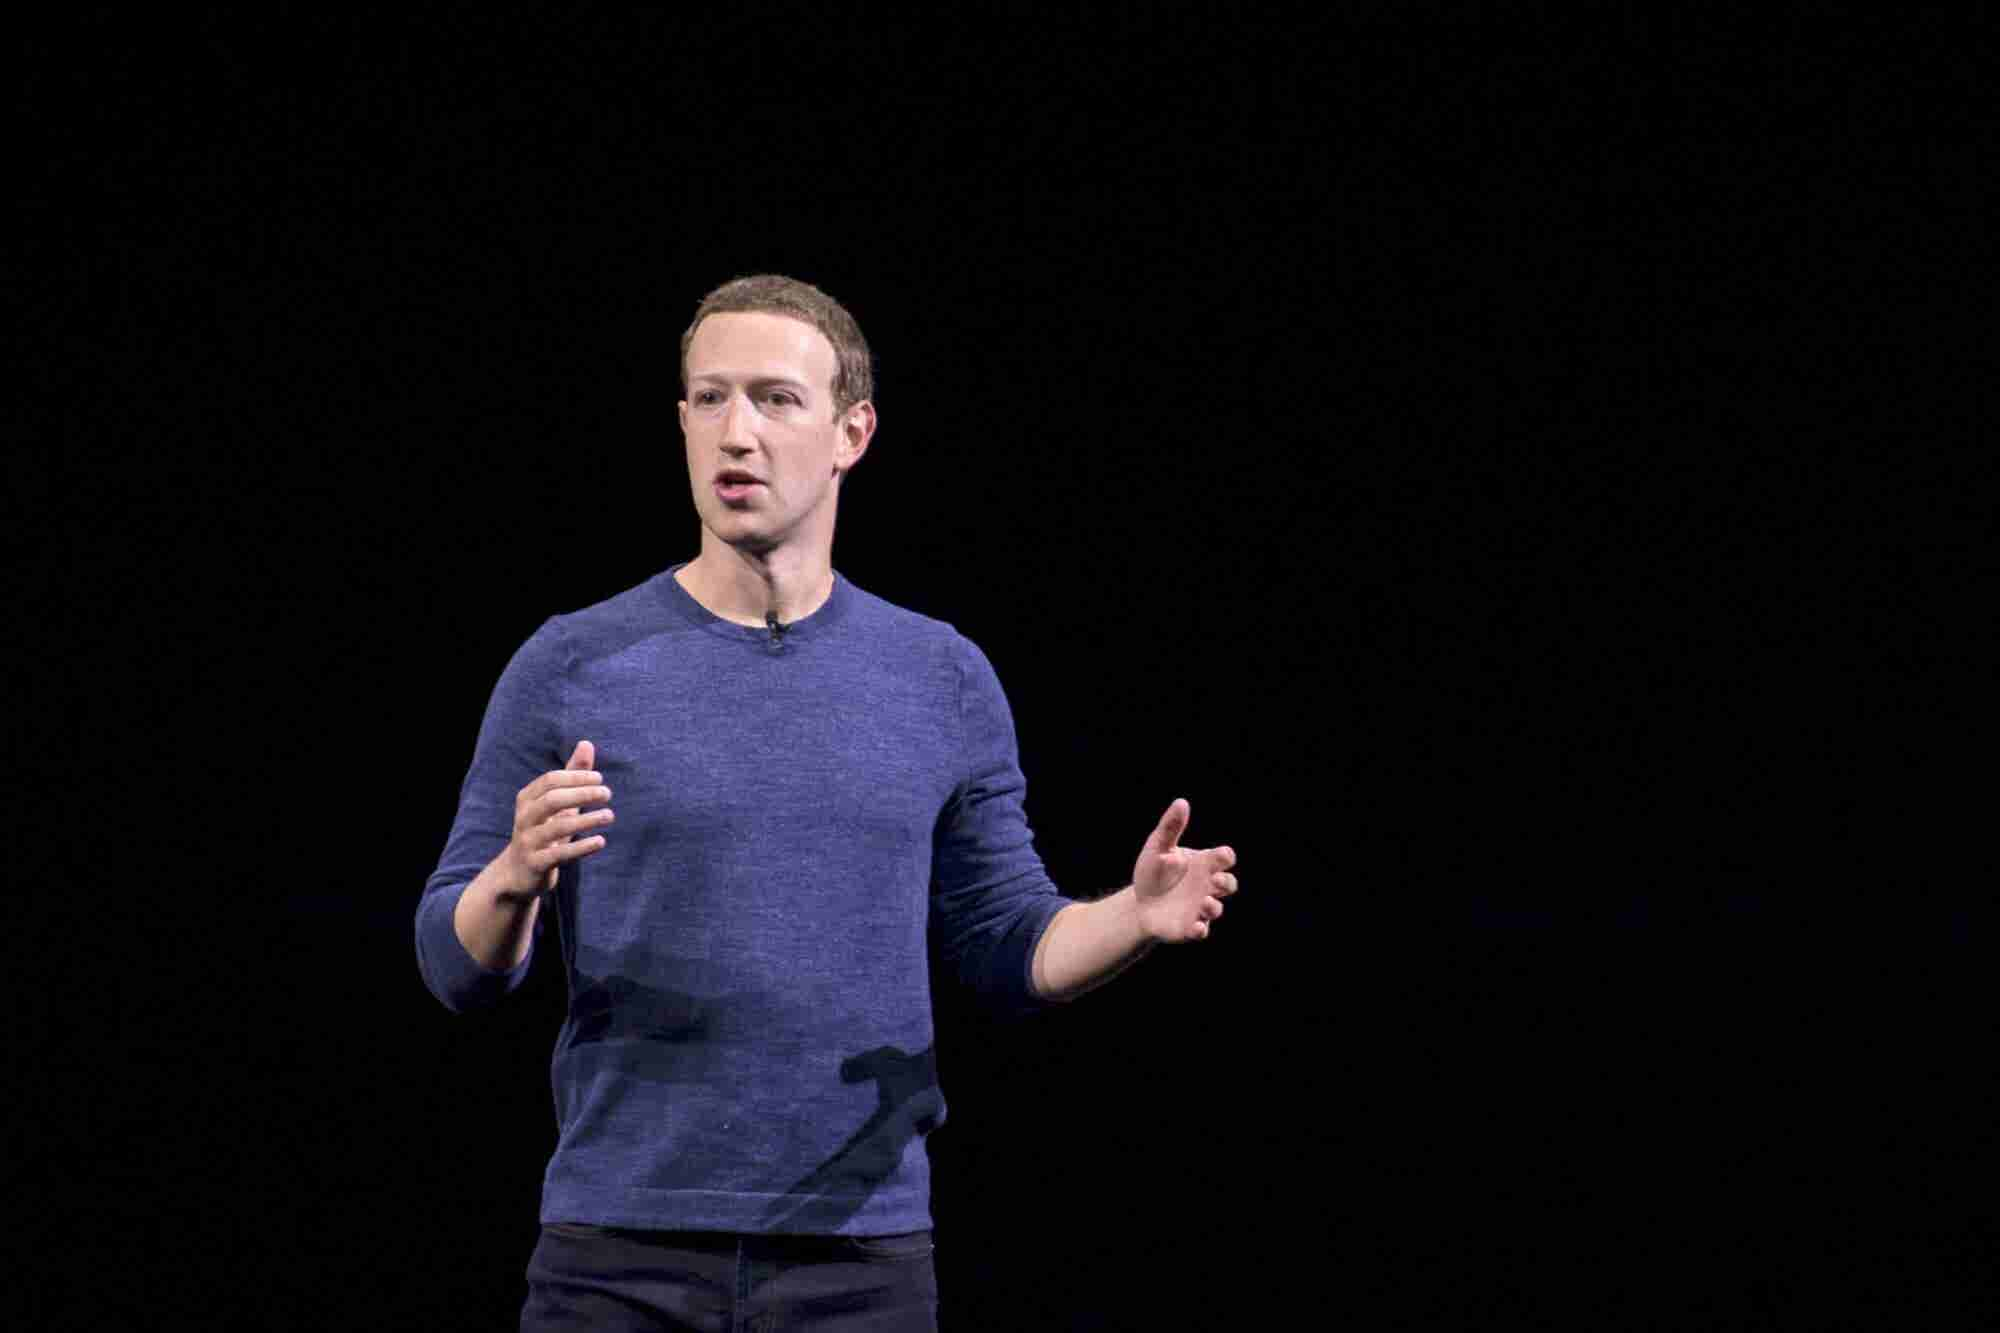 Mark Zuckerberg Defends Facebook With 'The Facts' Op-Ed